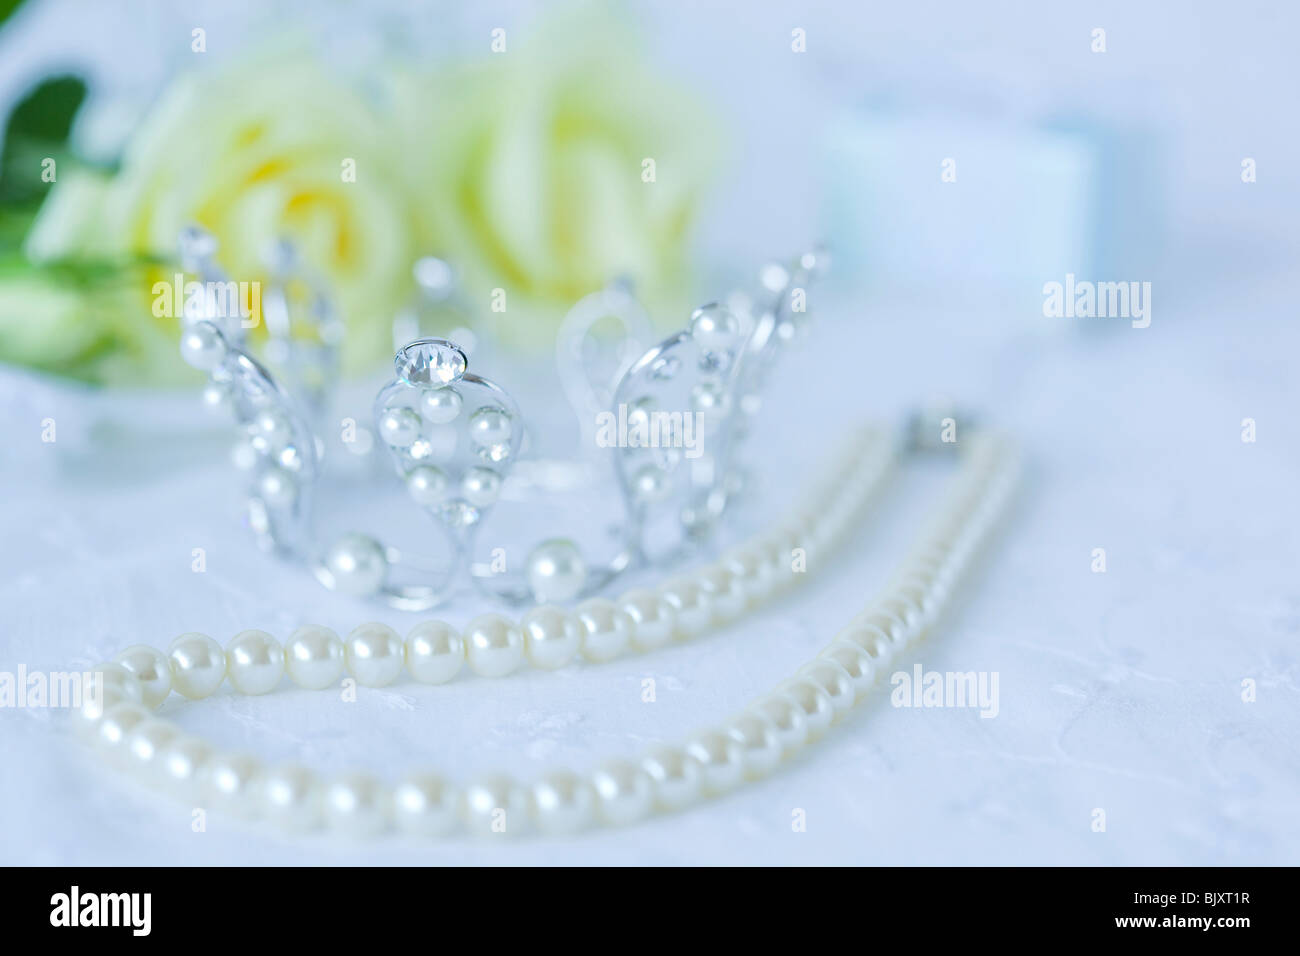 Pearl necklace and tiara - Stock Image